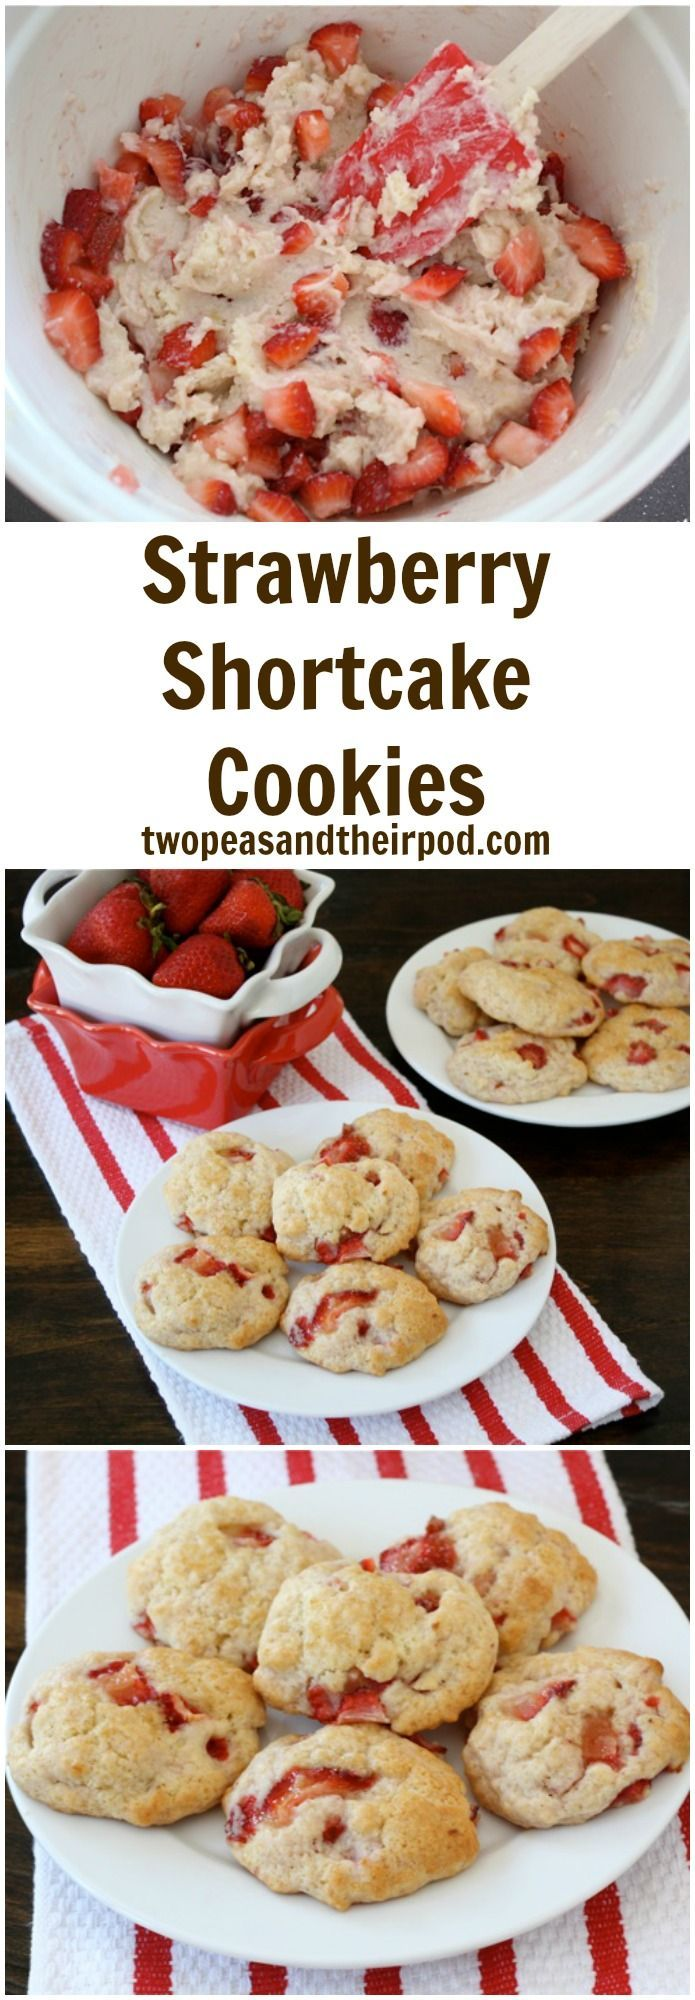 Strawberry Shortcake Cookie Recipe on http://twopeasandtheirpod.com If you like strawberry shortcake, you will LOVE these cookies! They are the perfect dessert for spring!